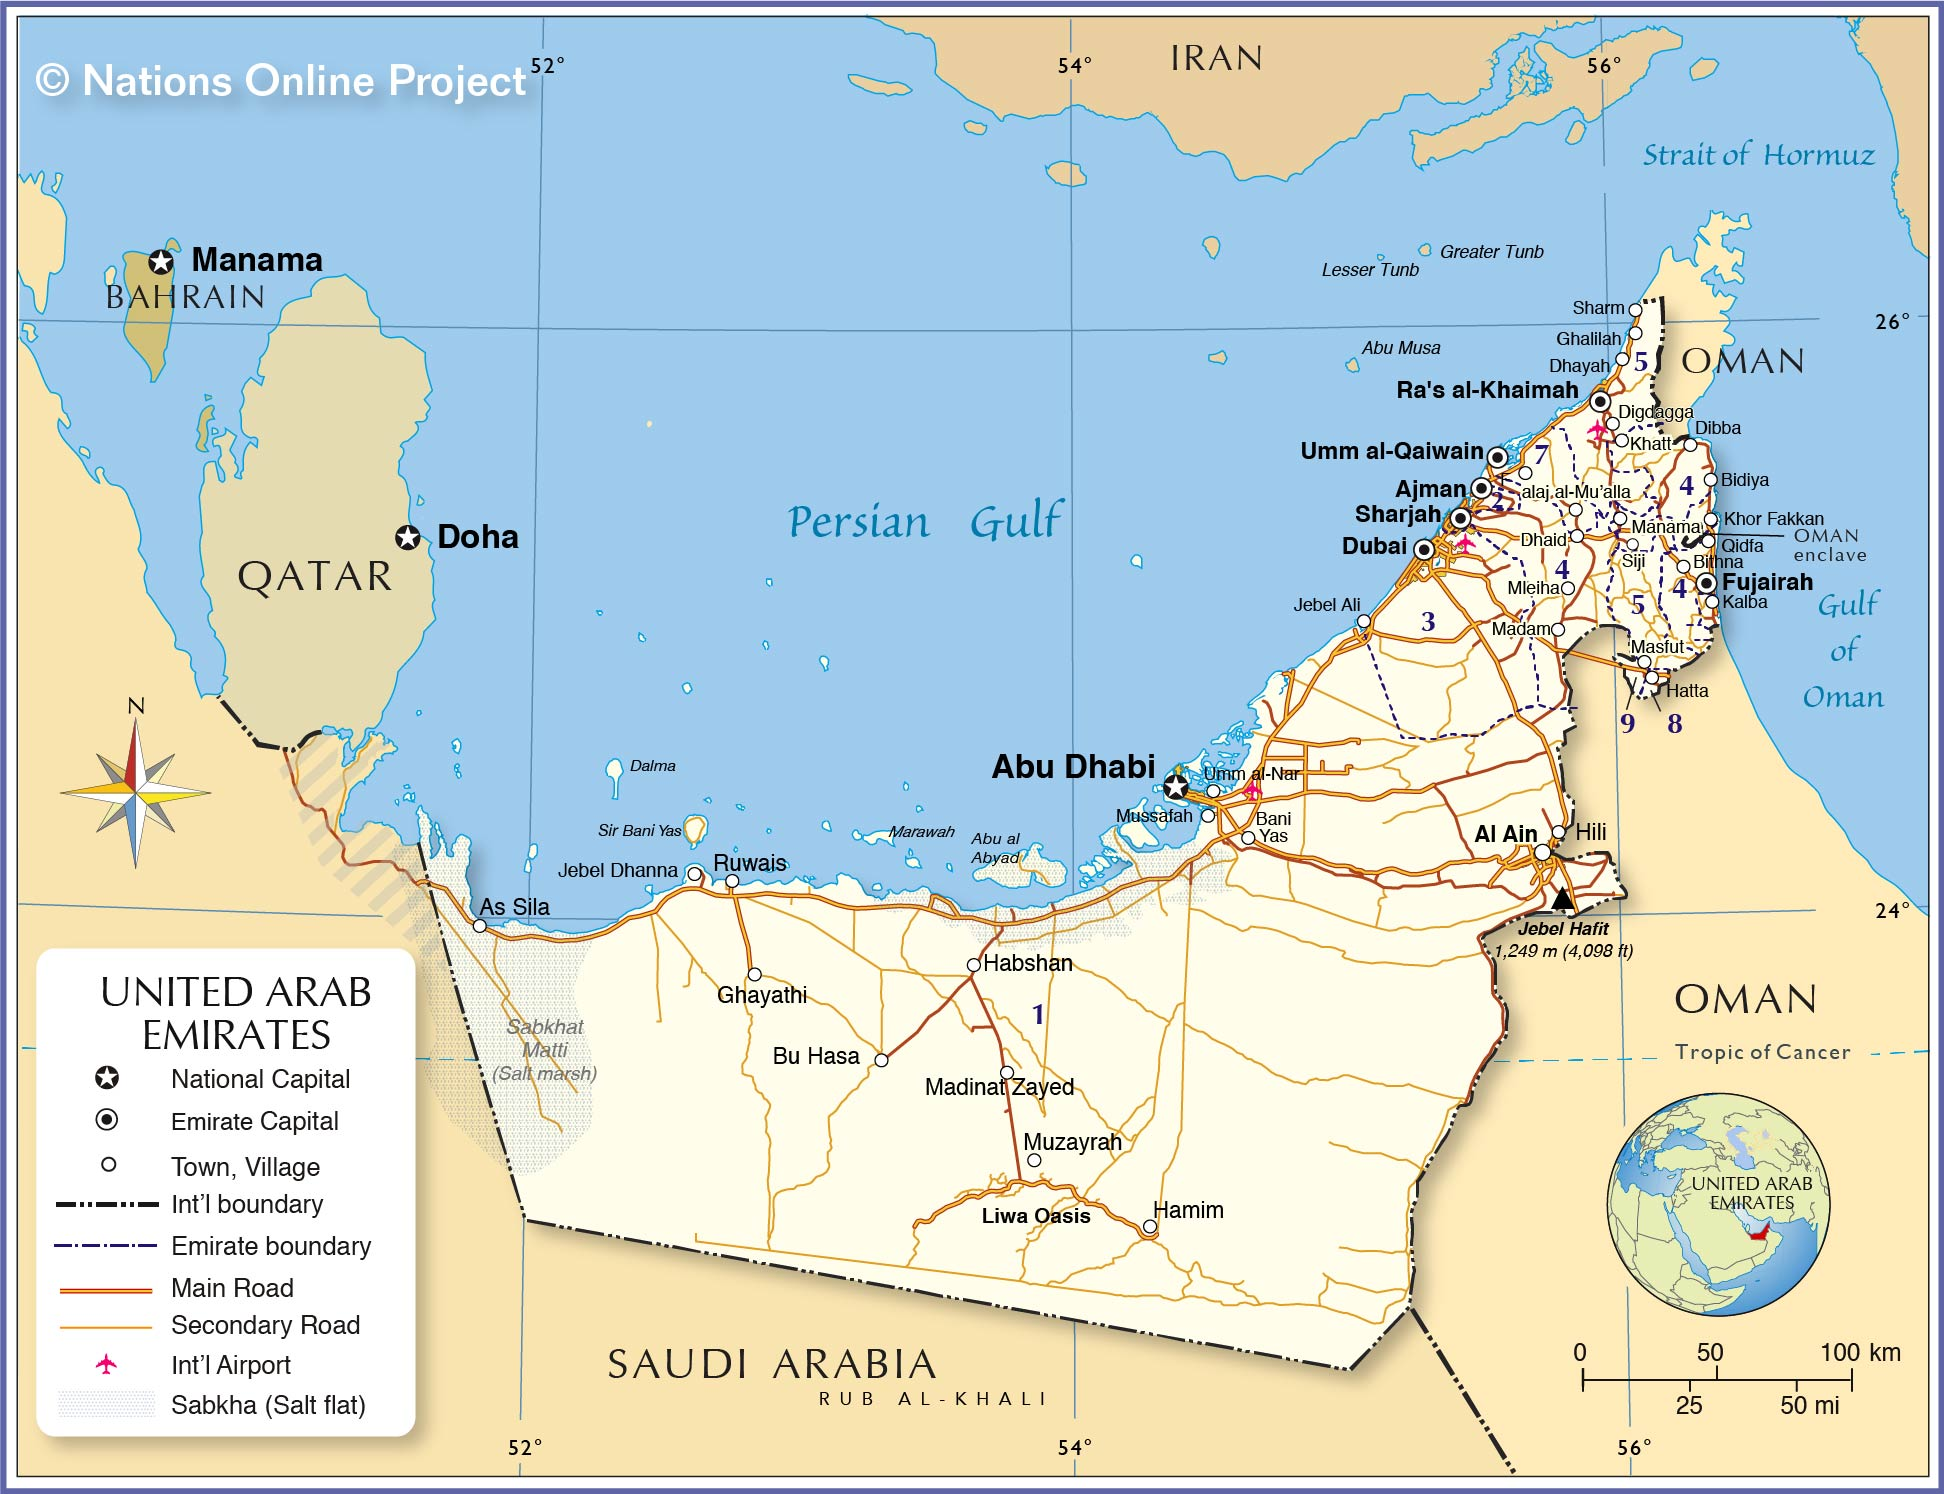 Political Map of United Arab Emirates - Nations Online Project on map of algeria, middle east, ras al-khaimah, burj al-arab, united states of america, map of bhutan, map of sudan, map of malaysia, arabian peninsula, persian gulf, map of iran, map of isle of man, map of ethiopia, map of dubai and surrounding countries, map of netherlands, abu dhabi, burj khalifa, map of montenegro, saudi arabia, map of singapore, map of pakistan, map of hungary, map of oman, map of venezuela, map of bosnia, map of bahrain, map of israel, map of armenia, map of denmark,